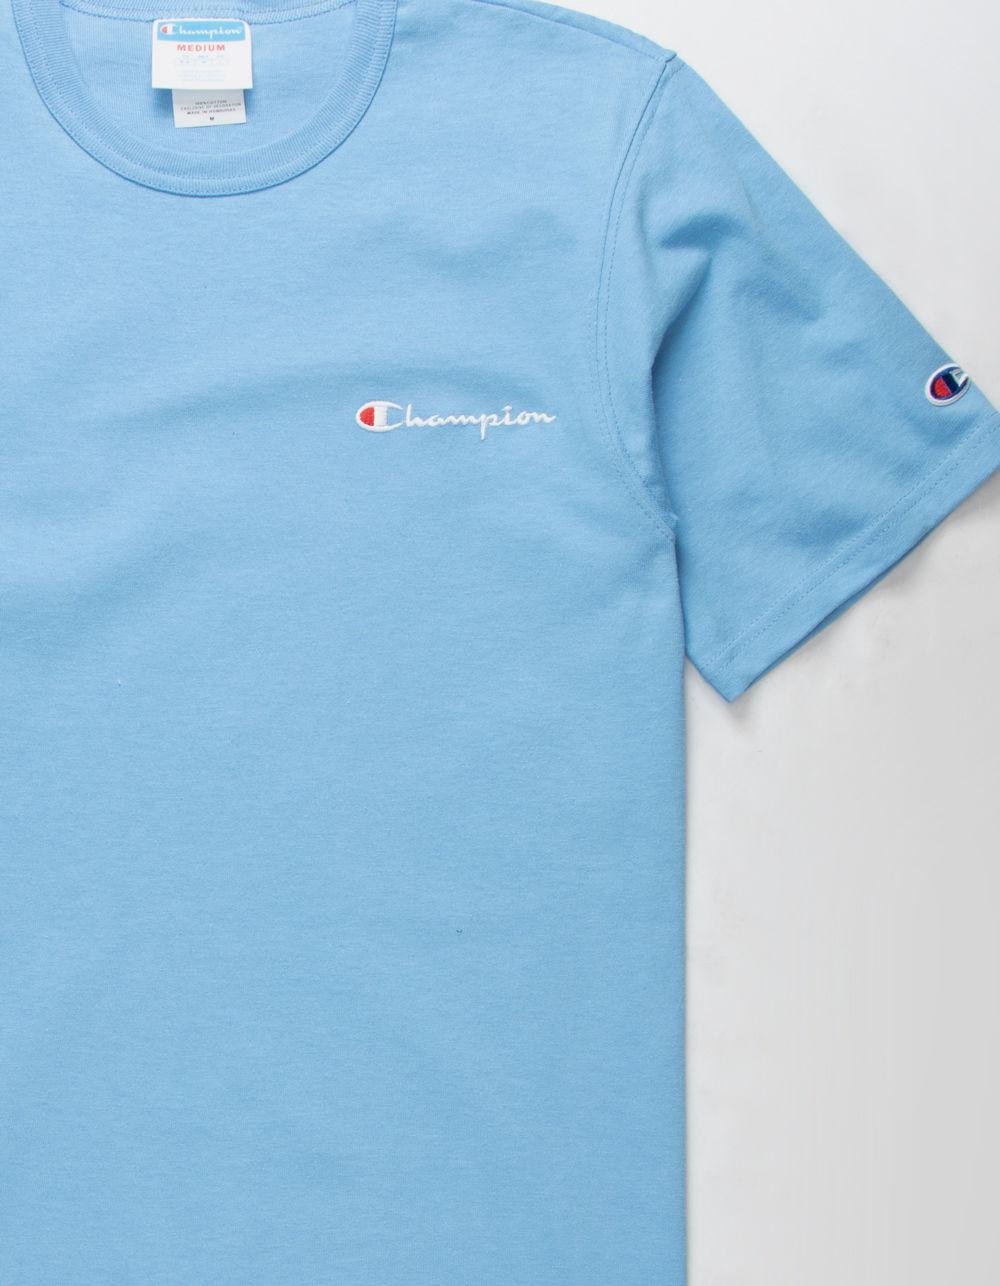 81b5b1569295 Champion Embroidered Script Logo Light Blue Mens T-shirt in Blue for ...